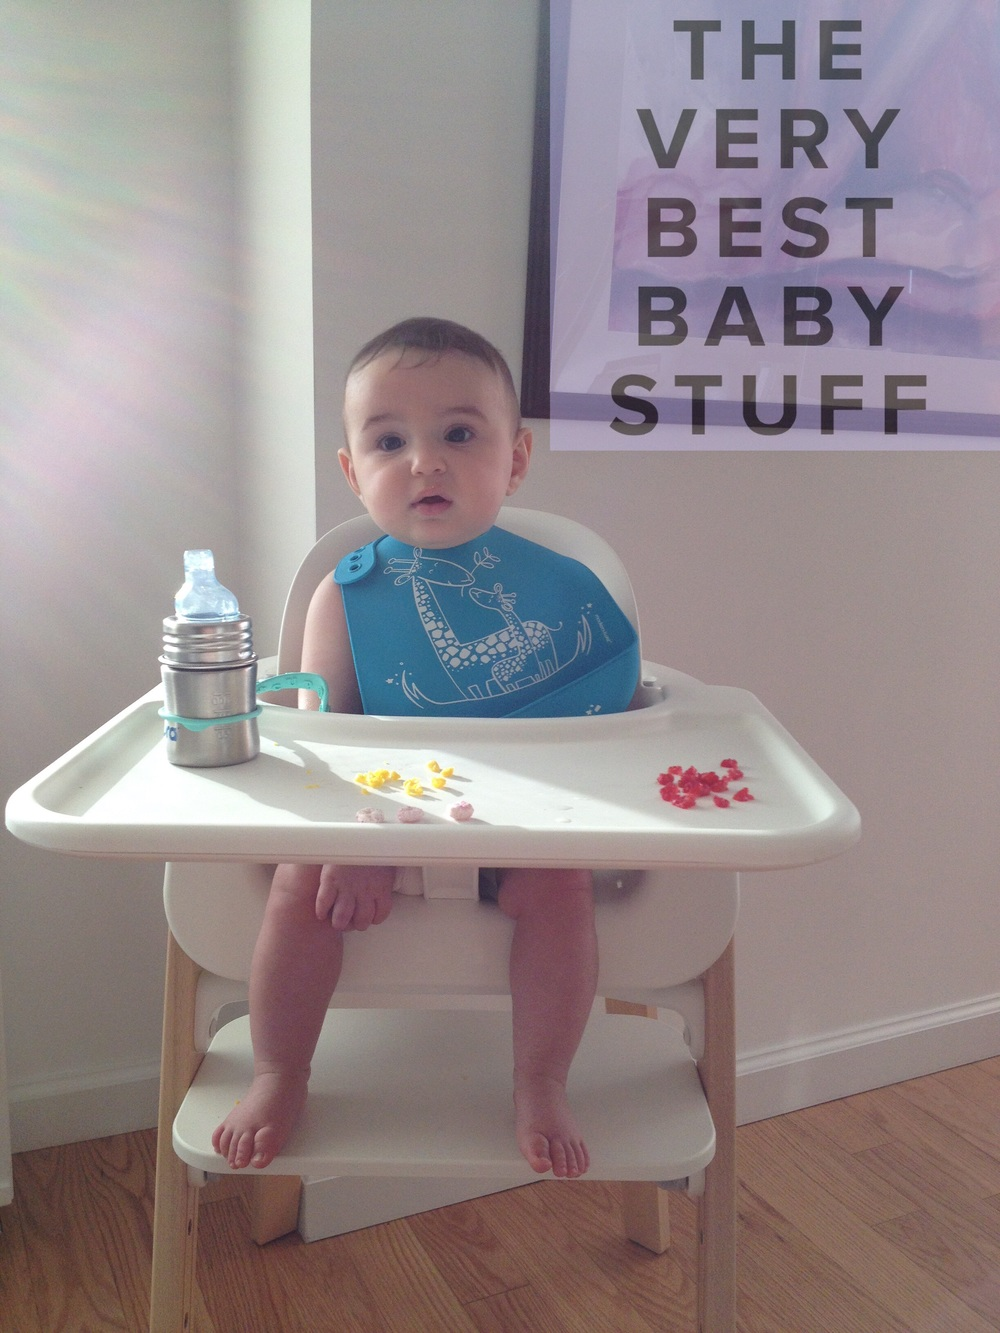 I LOVE THAT THE BABY SET SEAT CAN BE POSITIONED EITHER FORWARD OR BACK SO THAT S IS CLOSE TO HIS FOOD. I ALSO APPRECIATE THAT THE FOOTREST CAN BE ADJUSTED SO THAT FROM DAY ONE HIS FEET RESTED COMFORTABLY.   ALSO PICTURED ARE   OUR   FAVORITE SILICONE BIB  , A   SILICONE CUP LEASH   AND   AND   SIPPY CUP  .